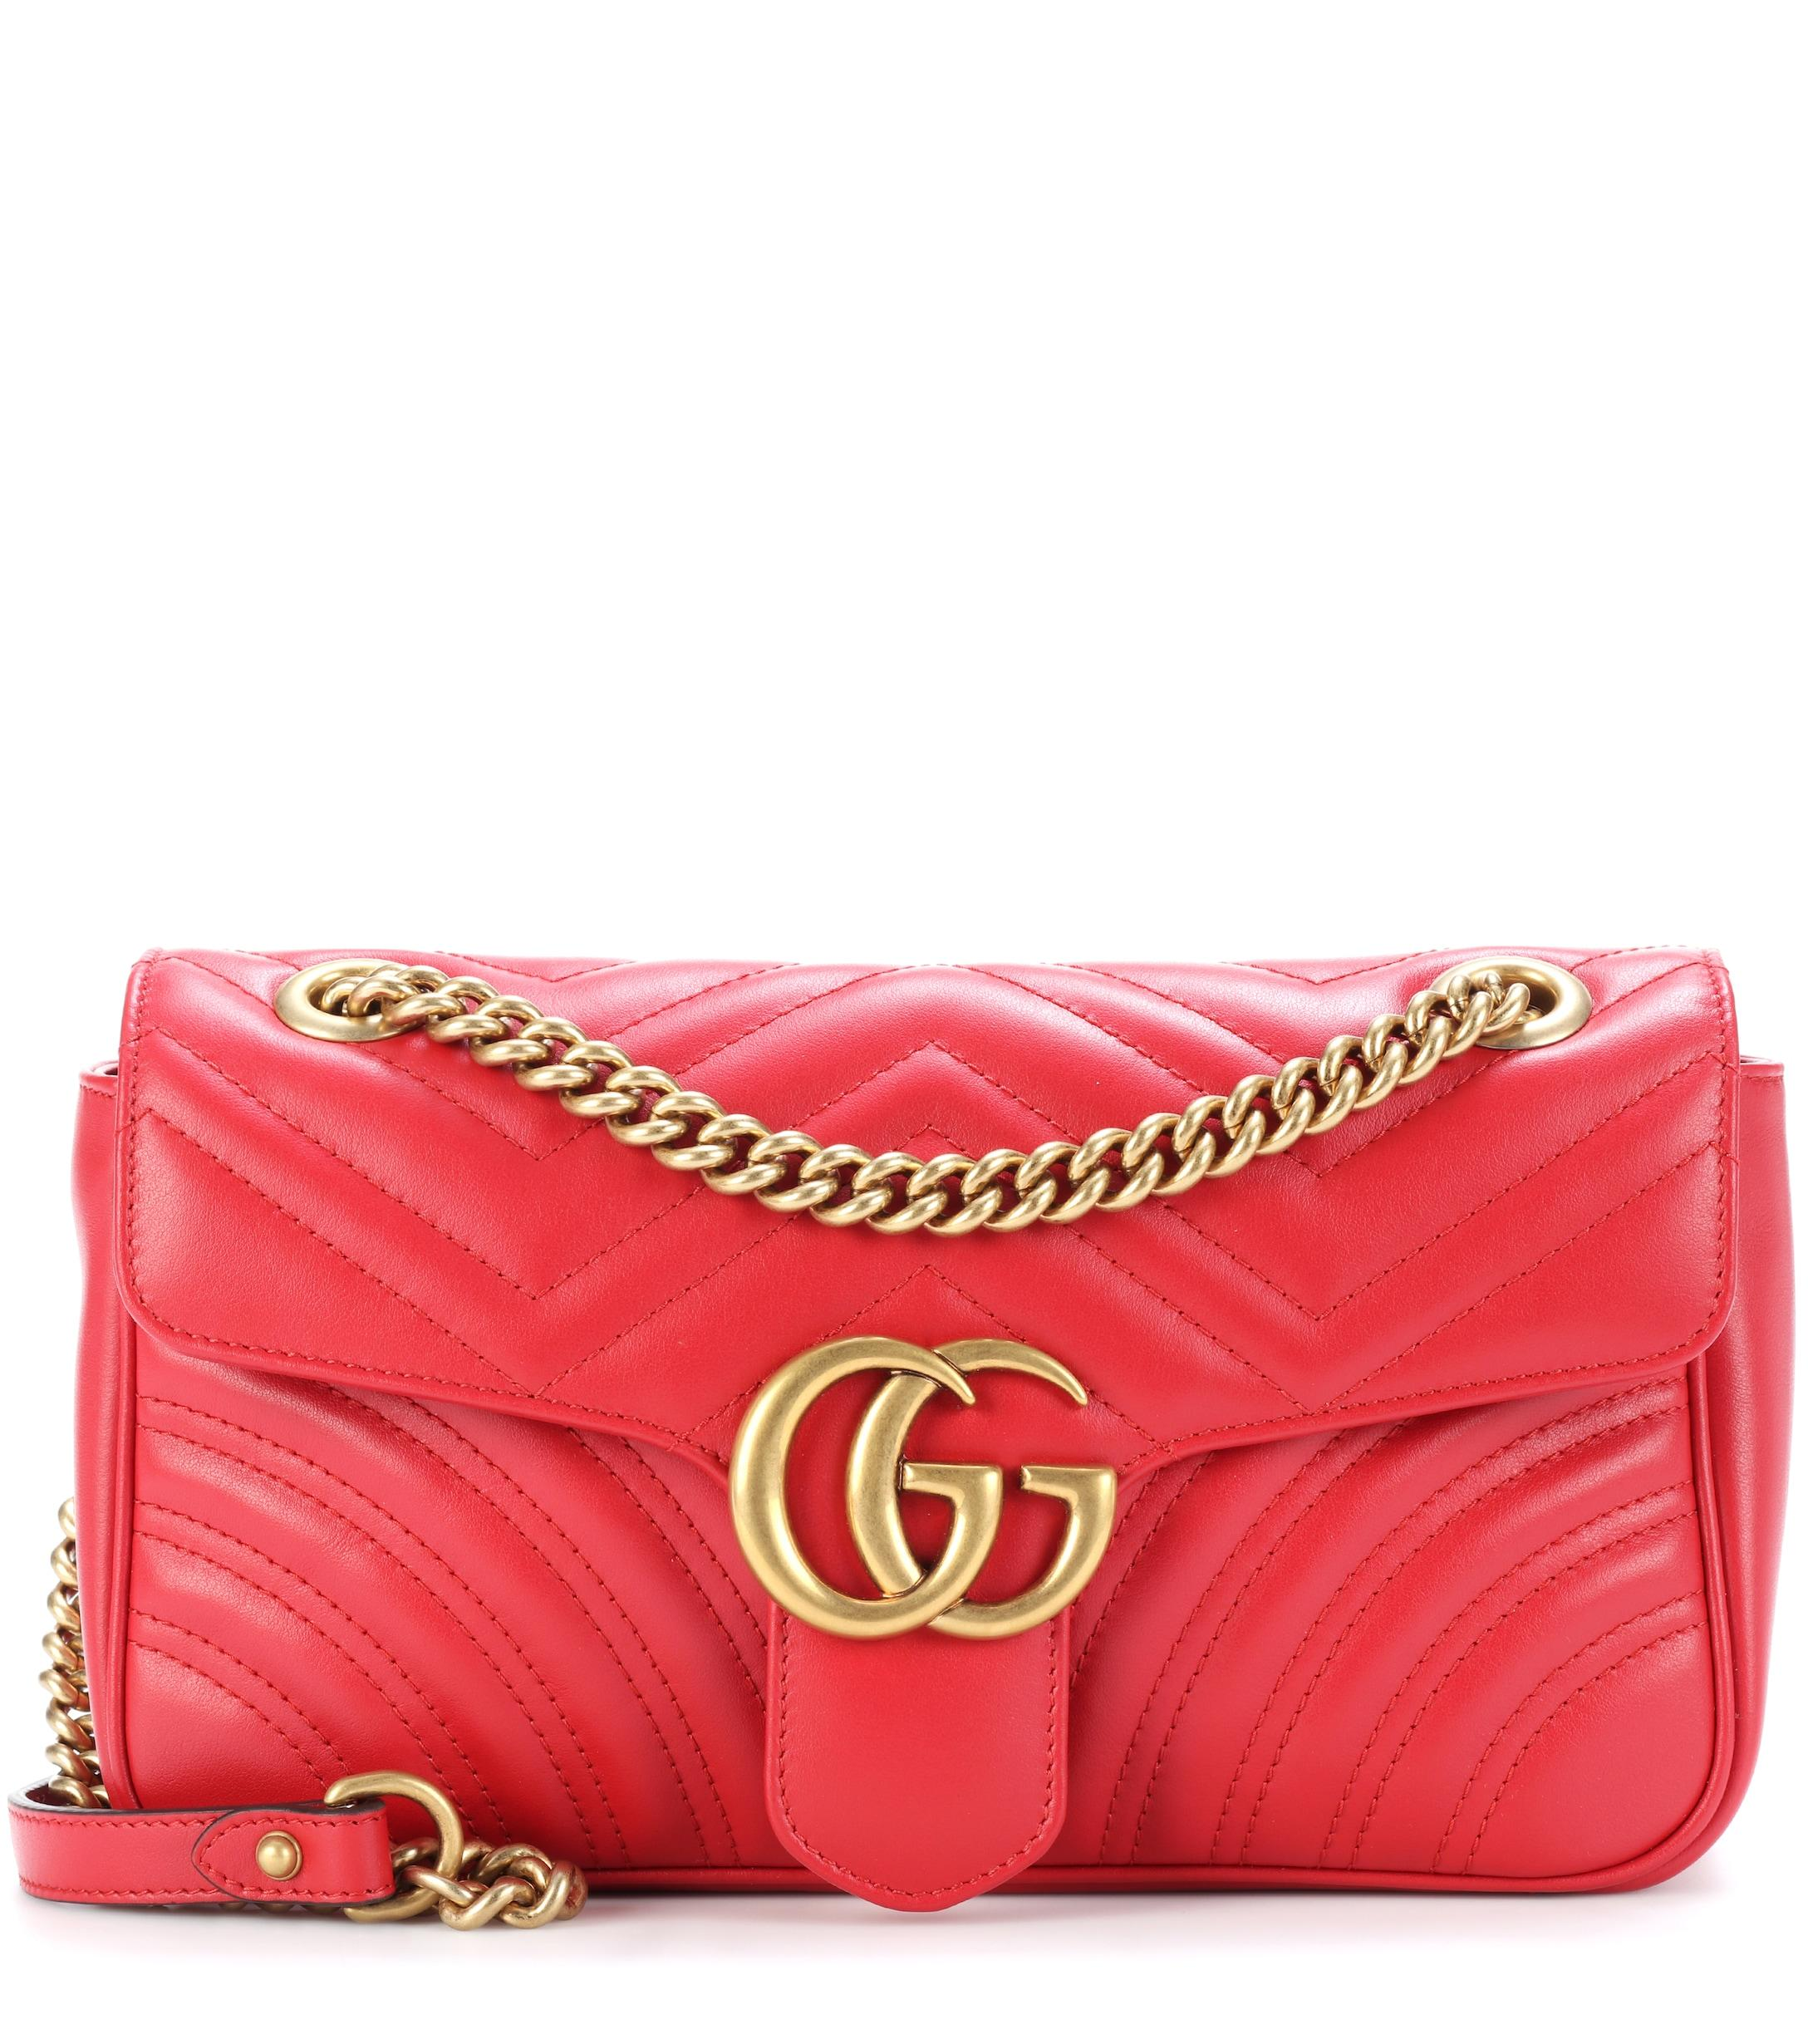 46eb51bd316 Lyst - Gucci GG Marmont Leather Shoulder Bag in Red